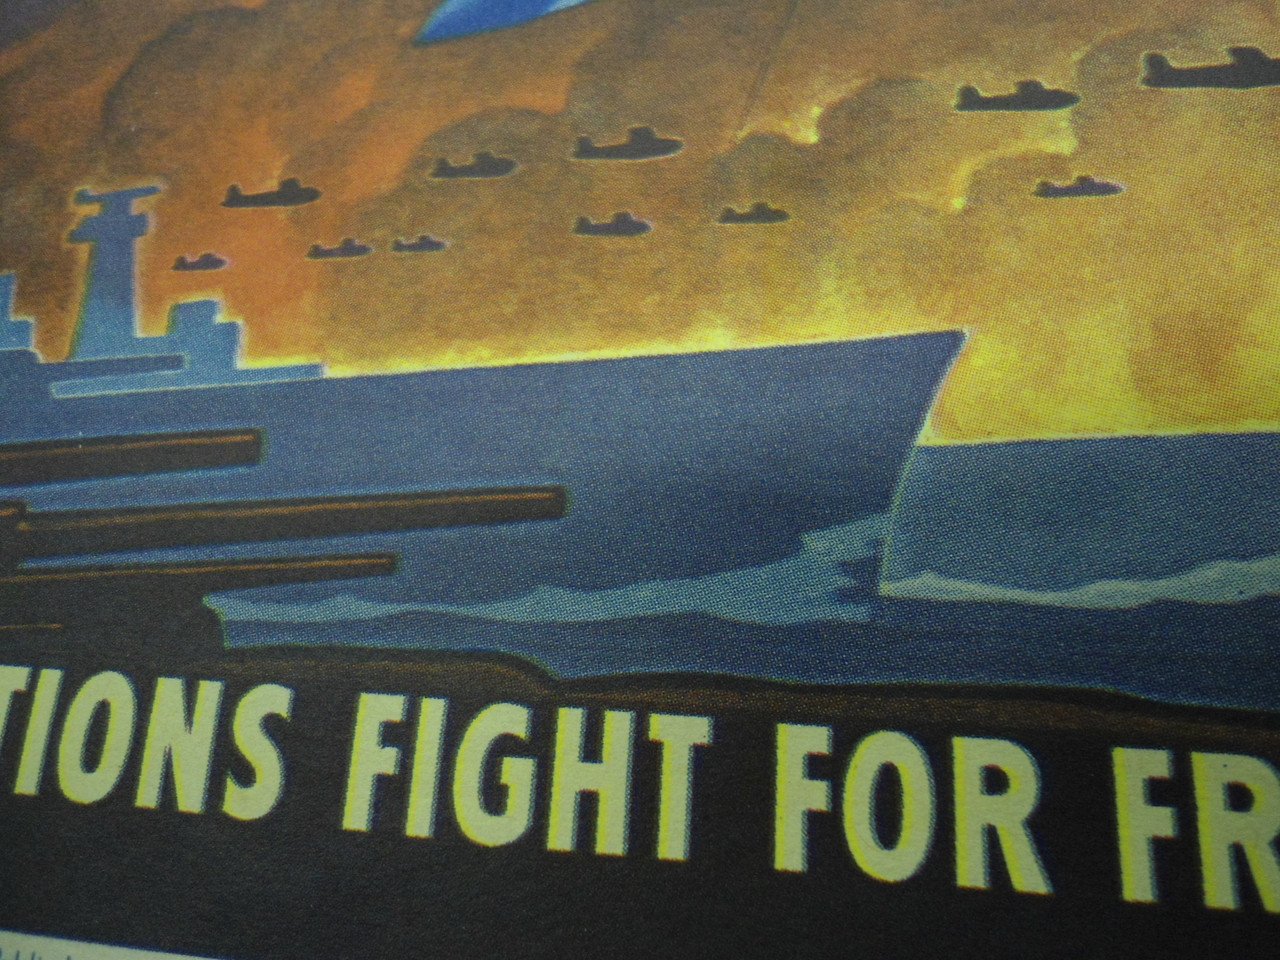 United Nations Propaganda Poster dated 1943